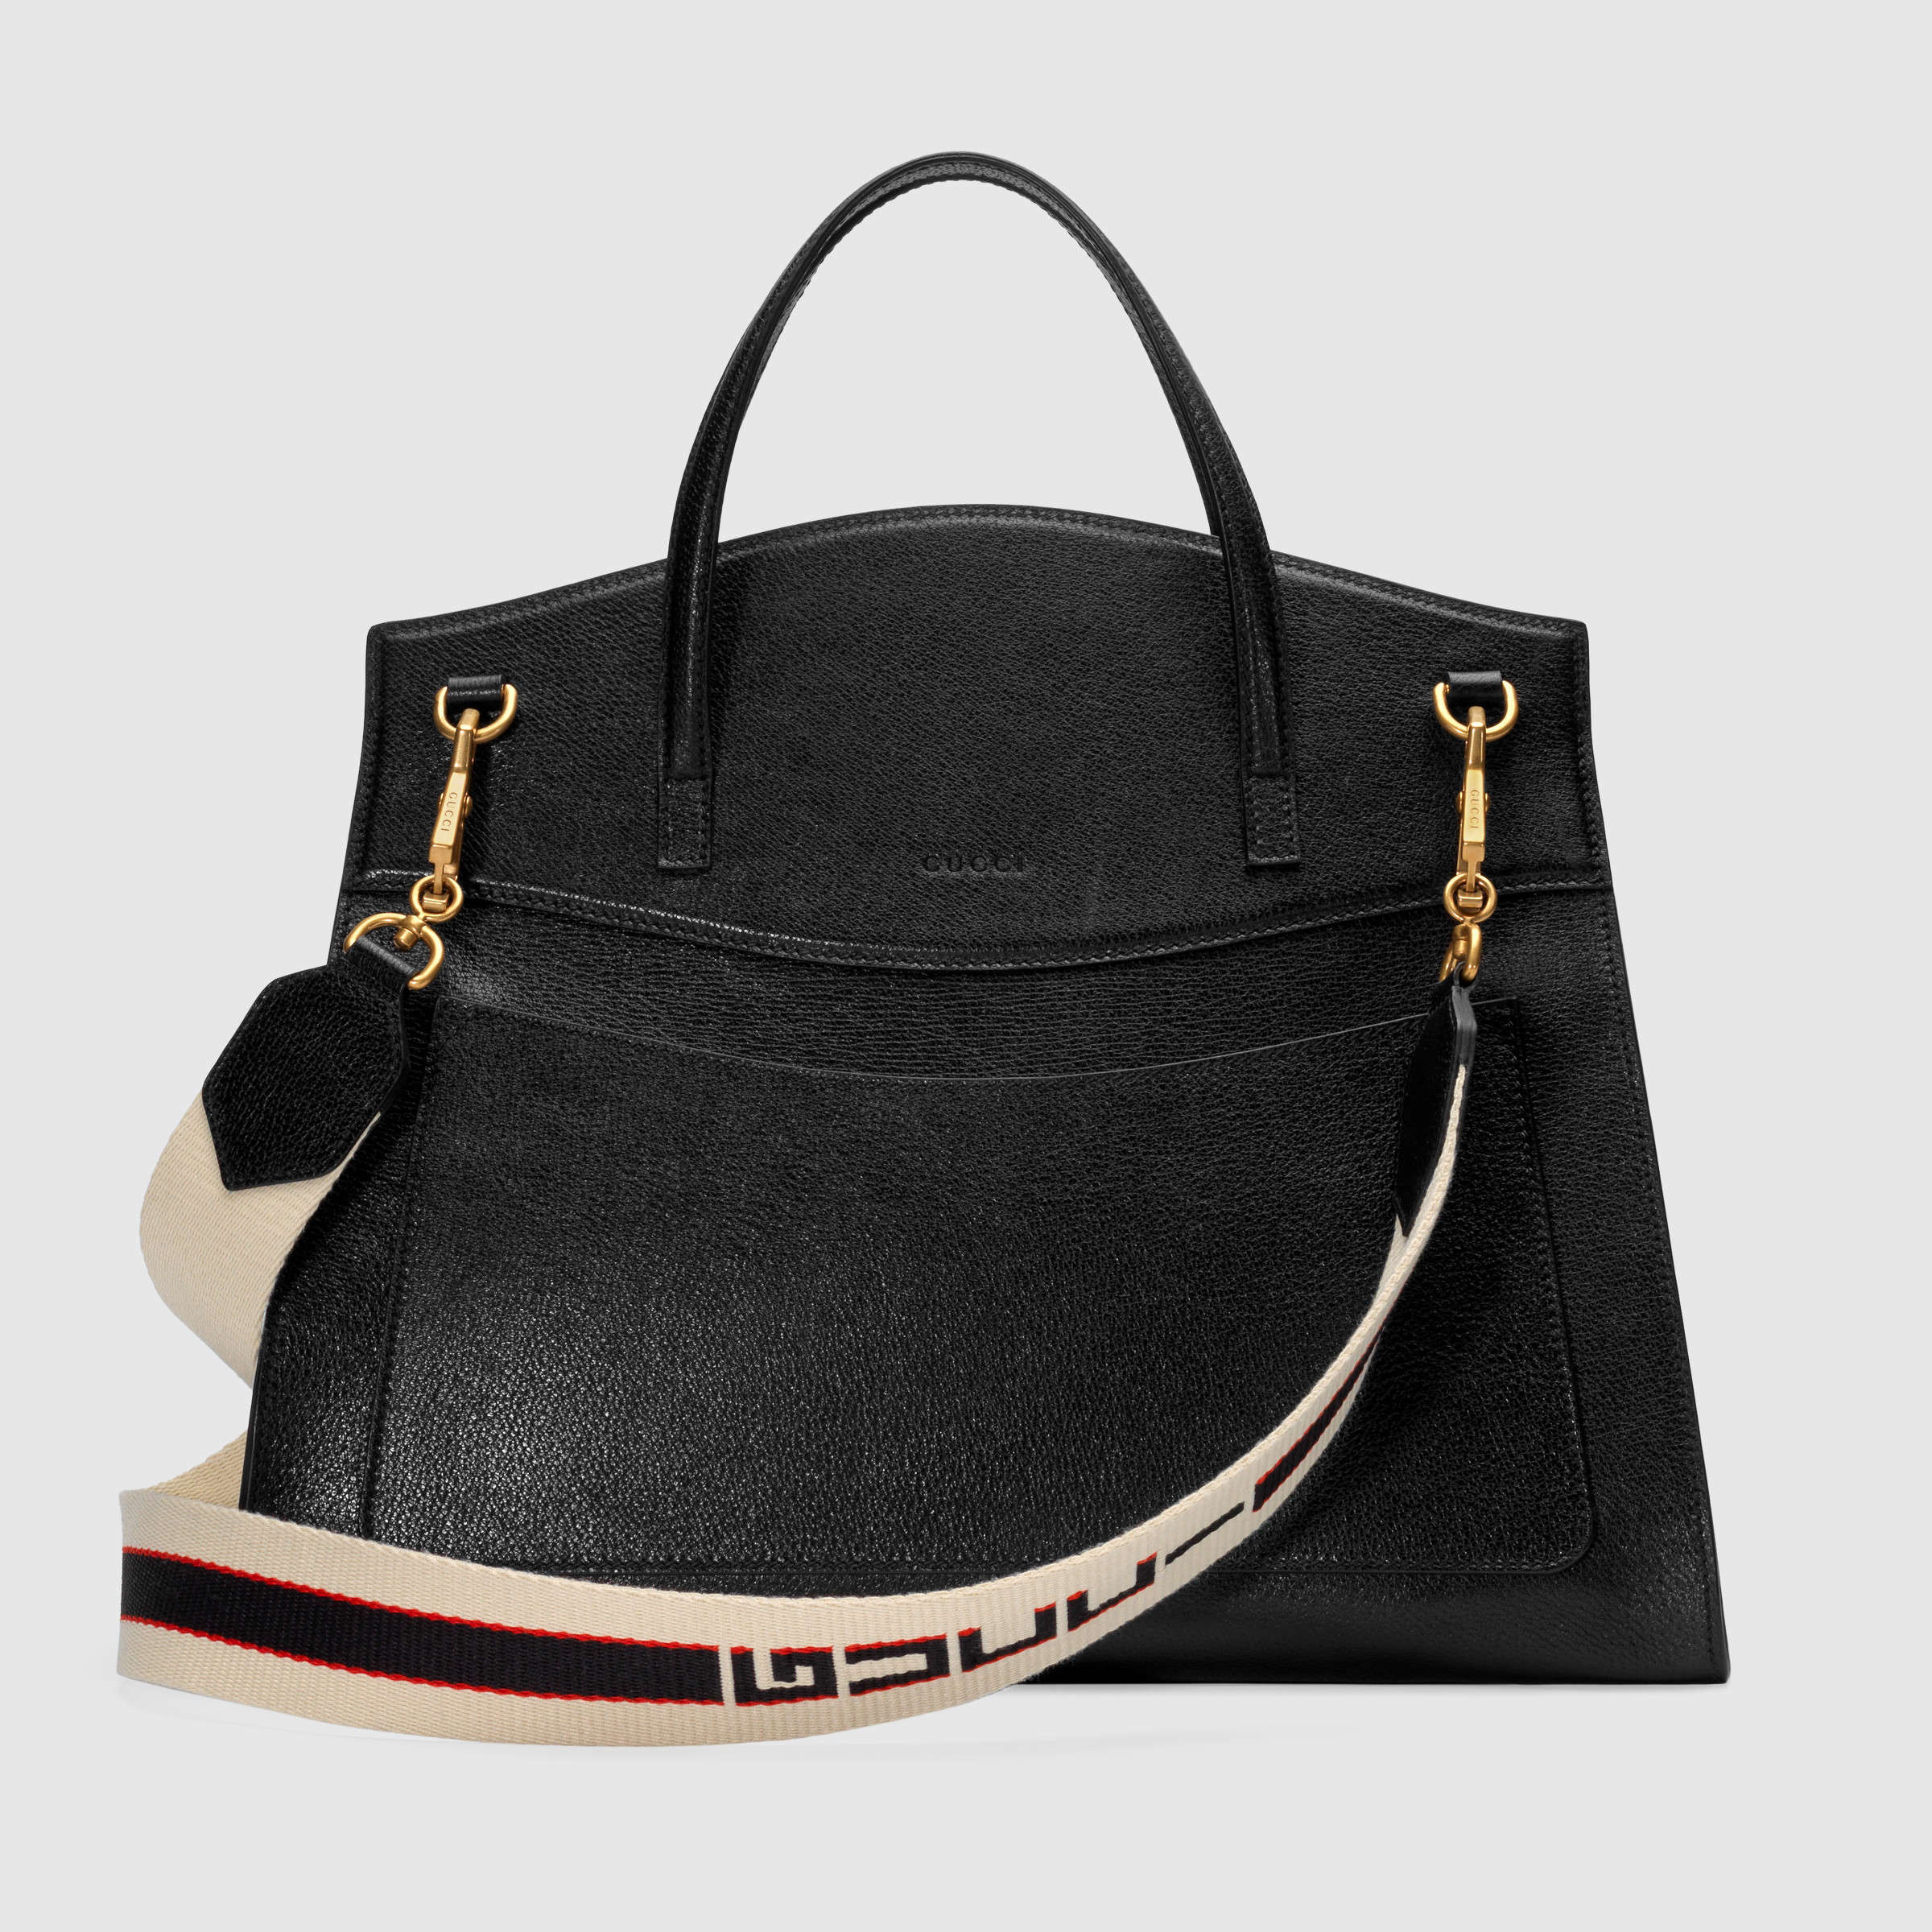 【グッチ】Guccitotem Large Top Handle Bag ハンドバッグ